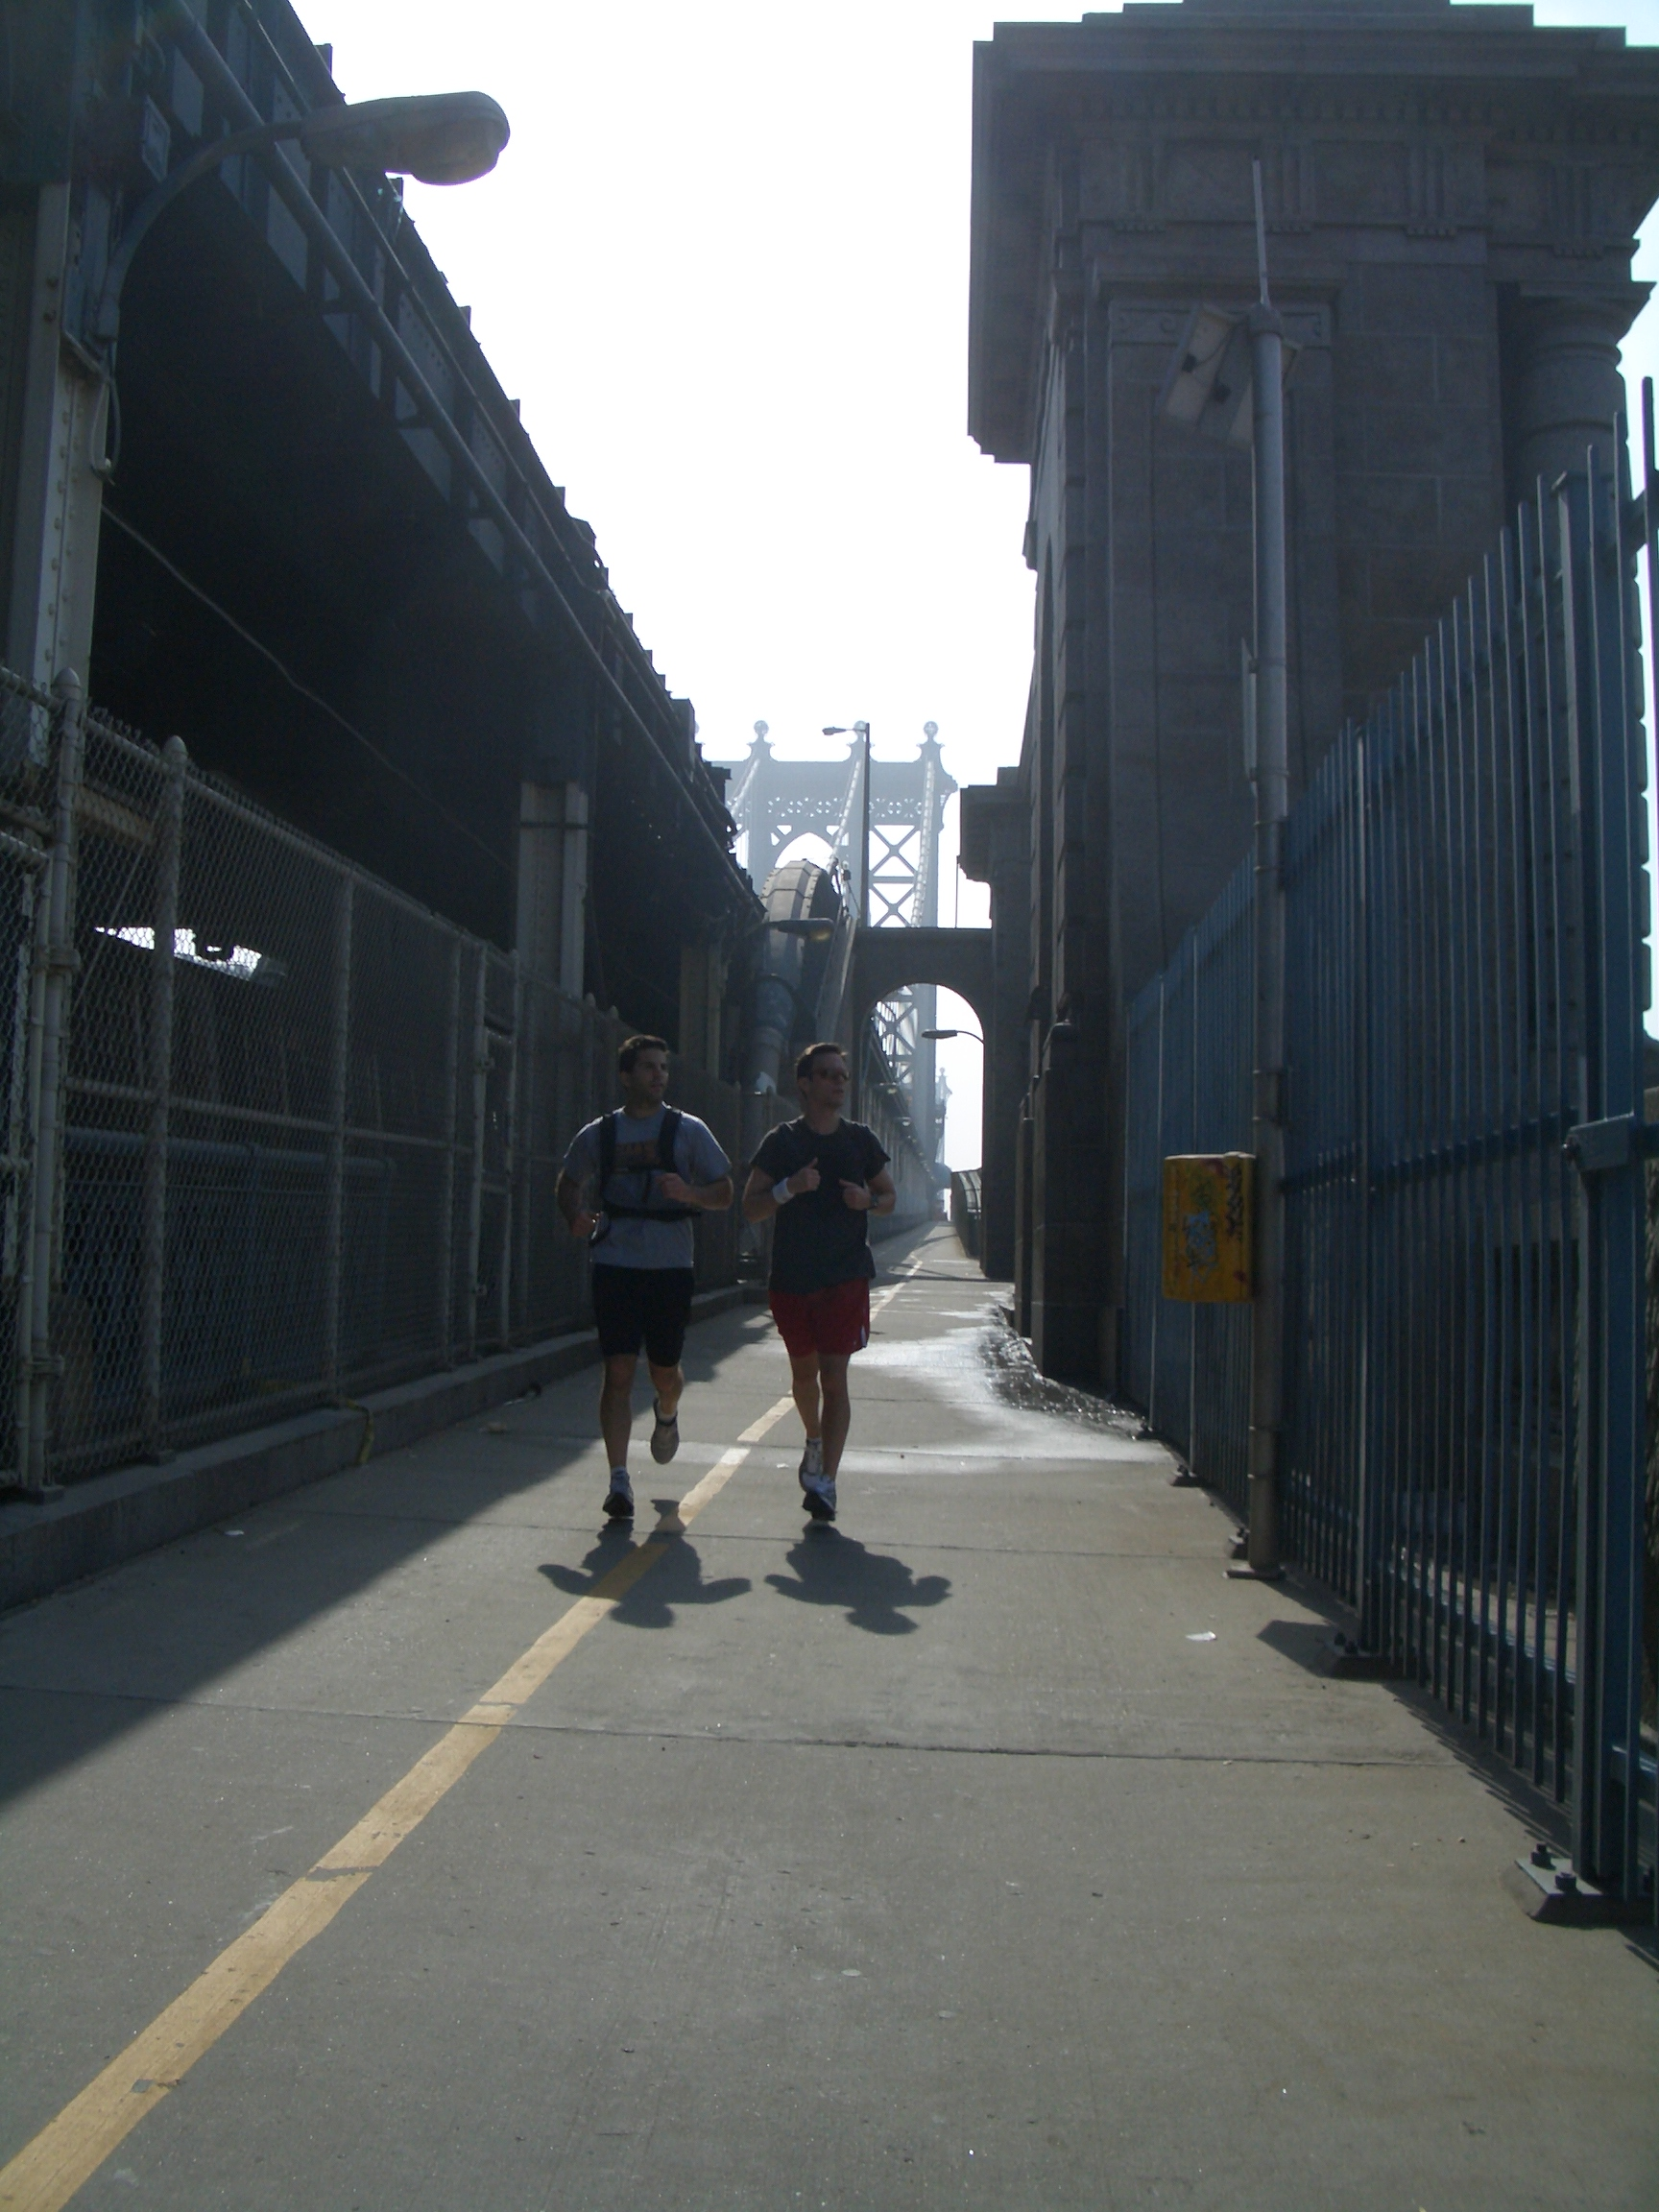 City Running Tours New York City leads a business traveler on a  PERSONALIZED RUN  across the Manhattan Bridge with views of the Brooklyn Bridge and lower Manhattan.